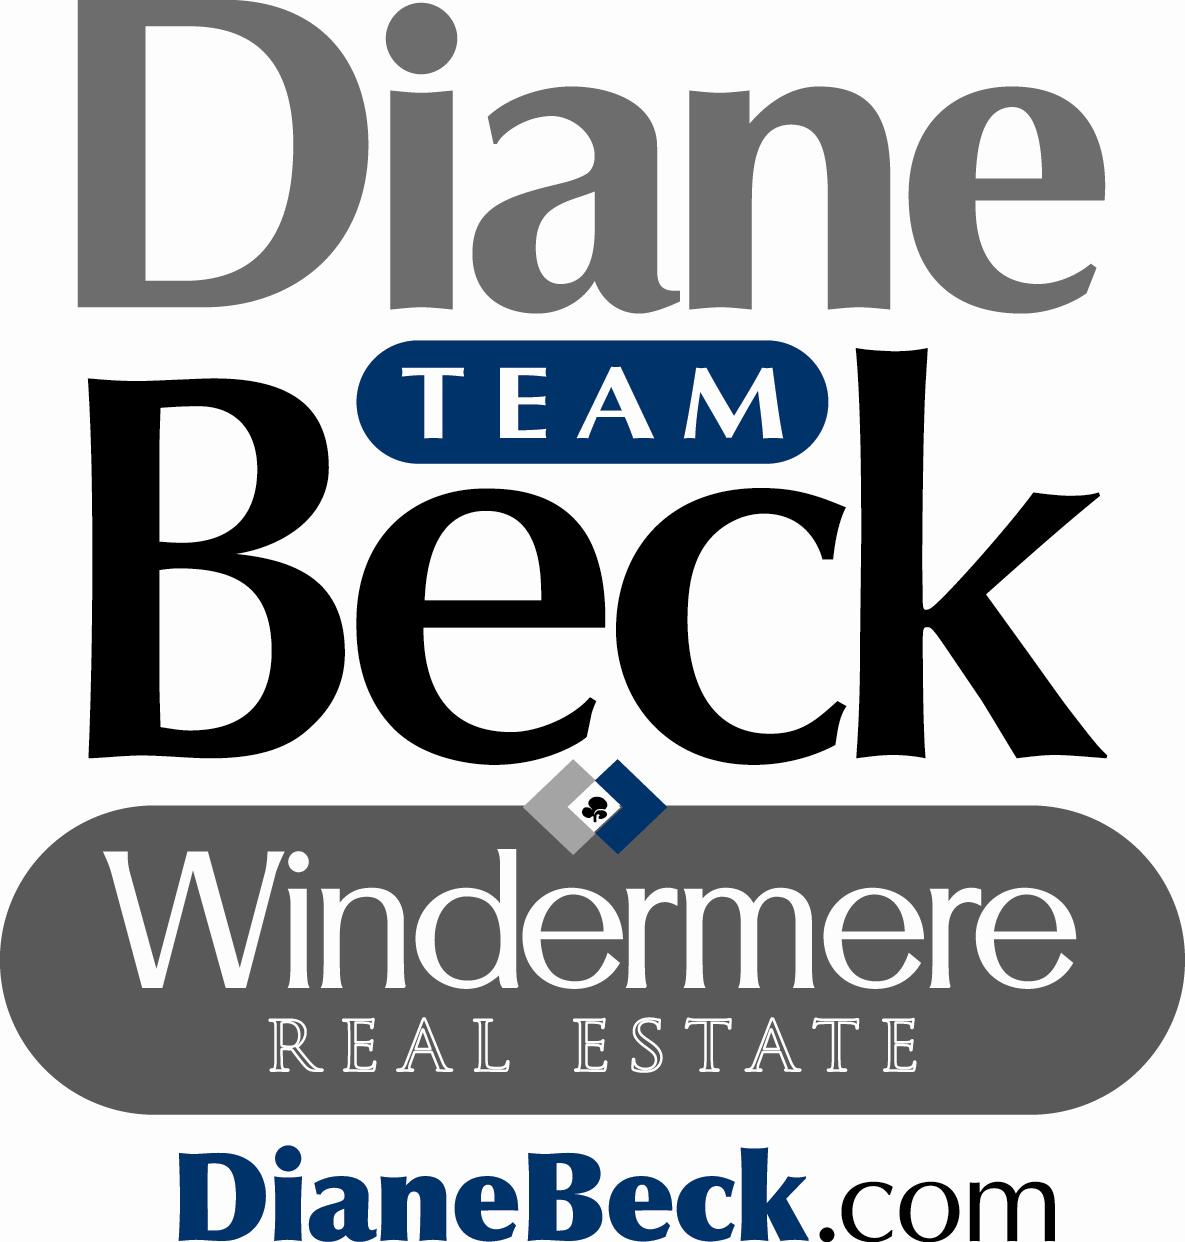 The Diane Beck Team